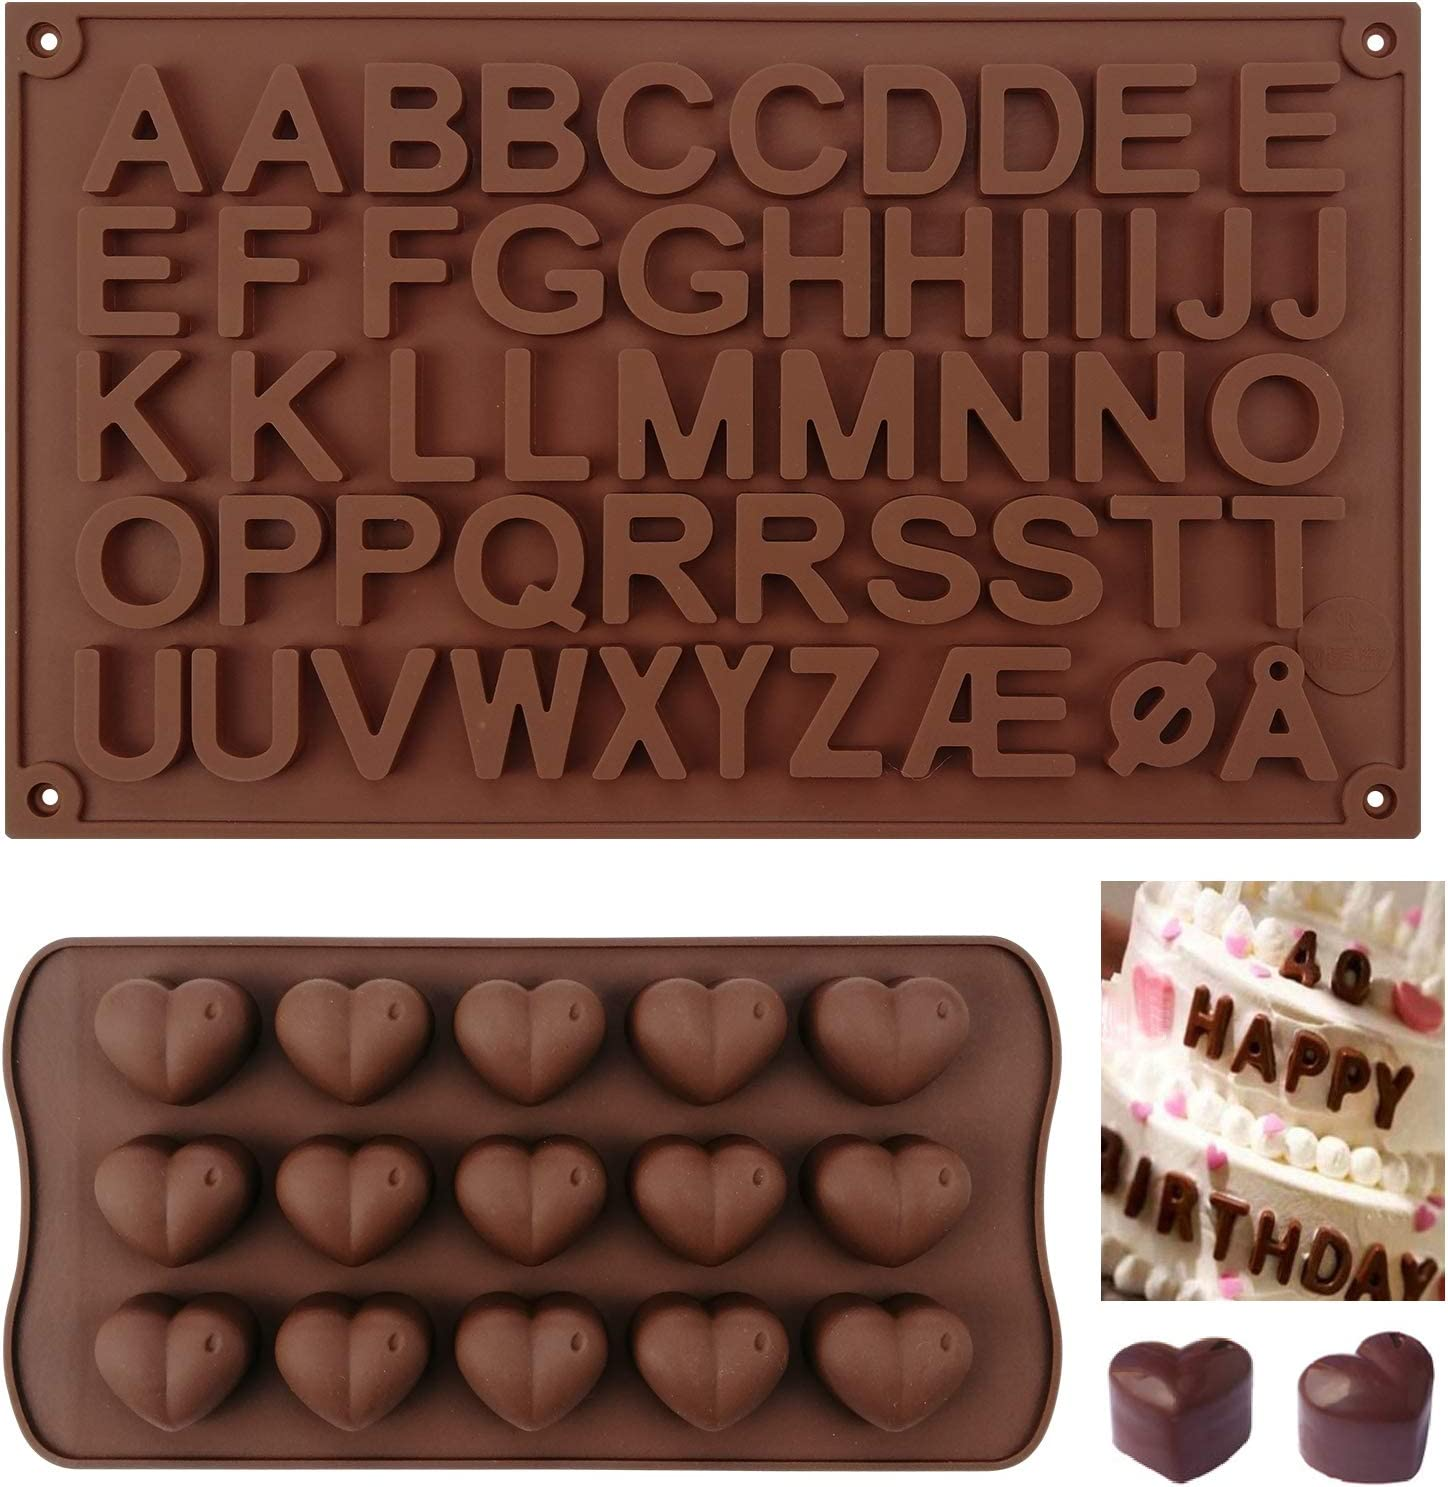 Silicone Chocolate Mold Surprise price 26 And Alphabets Quality inspection Letter Heart